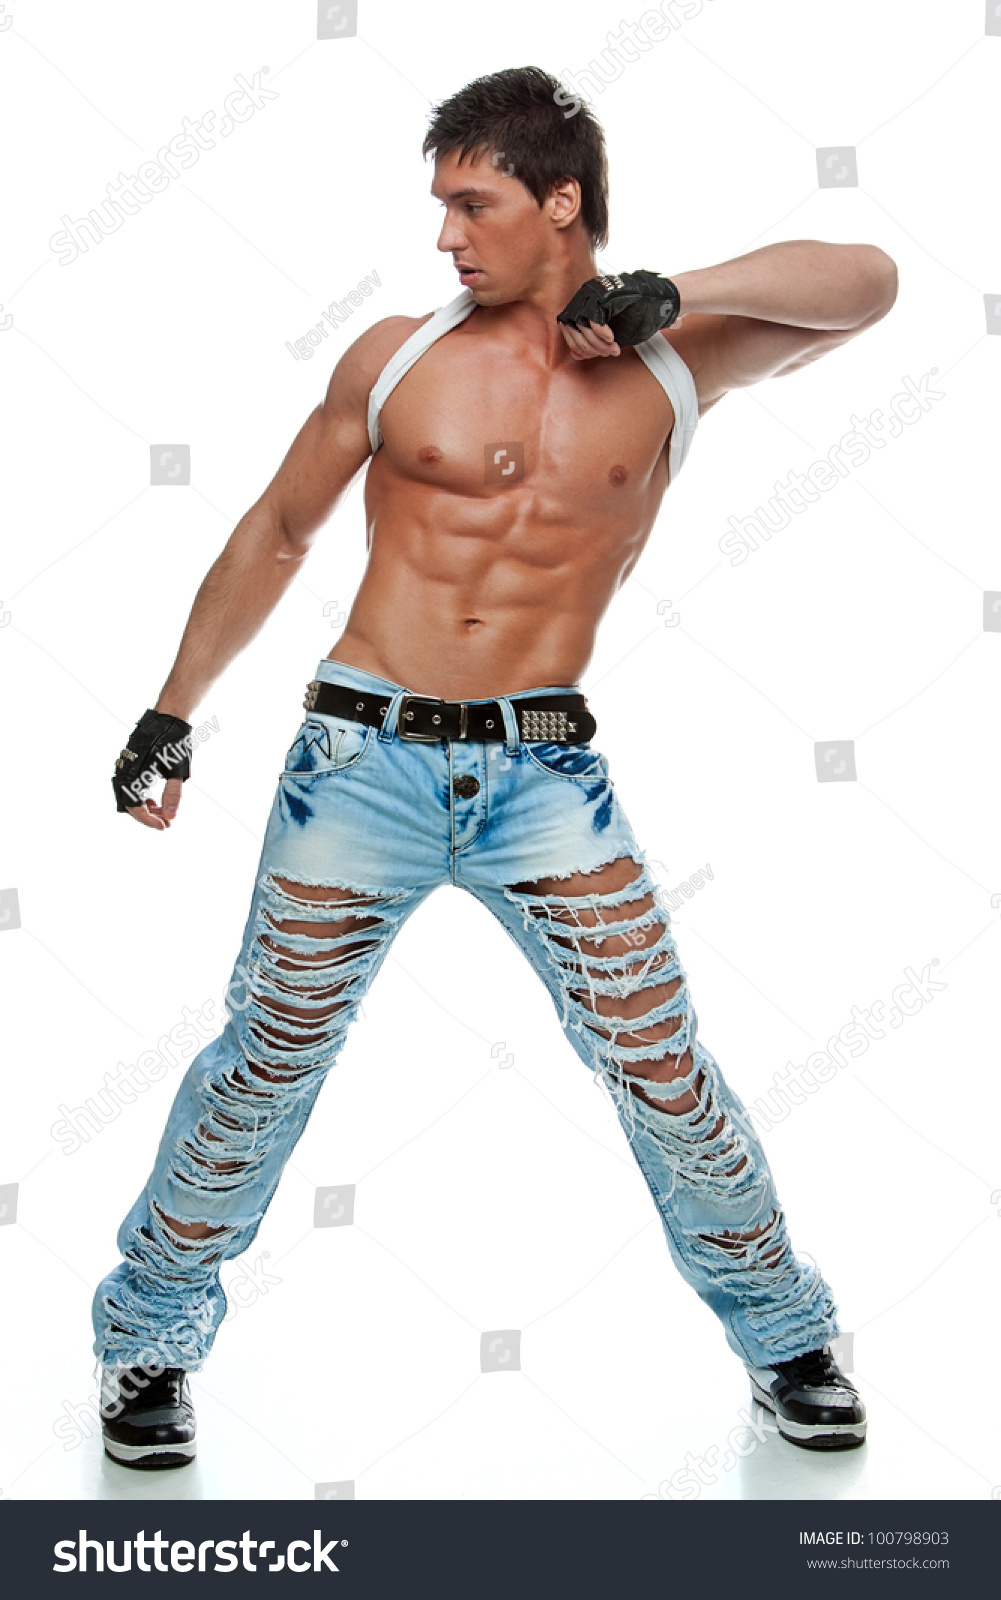 Muscular Relief Sexy Naked Man Posing Stock Photo